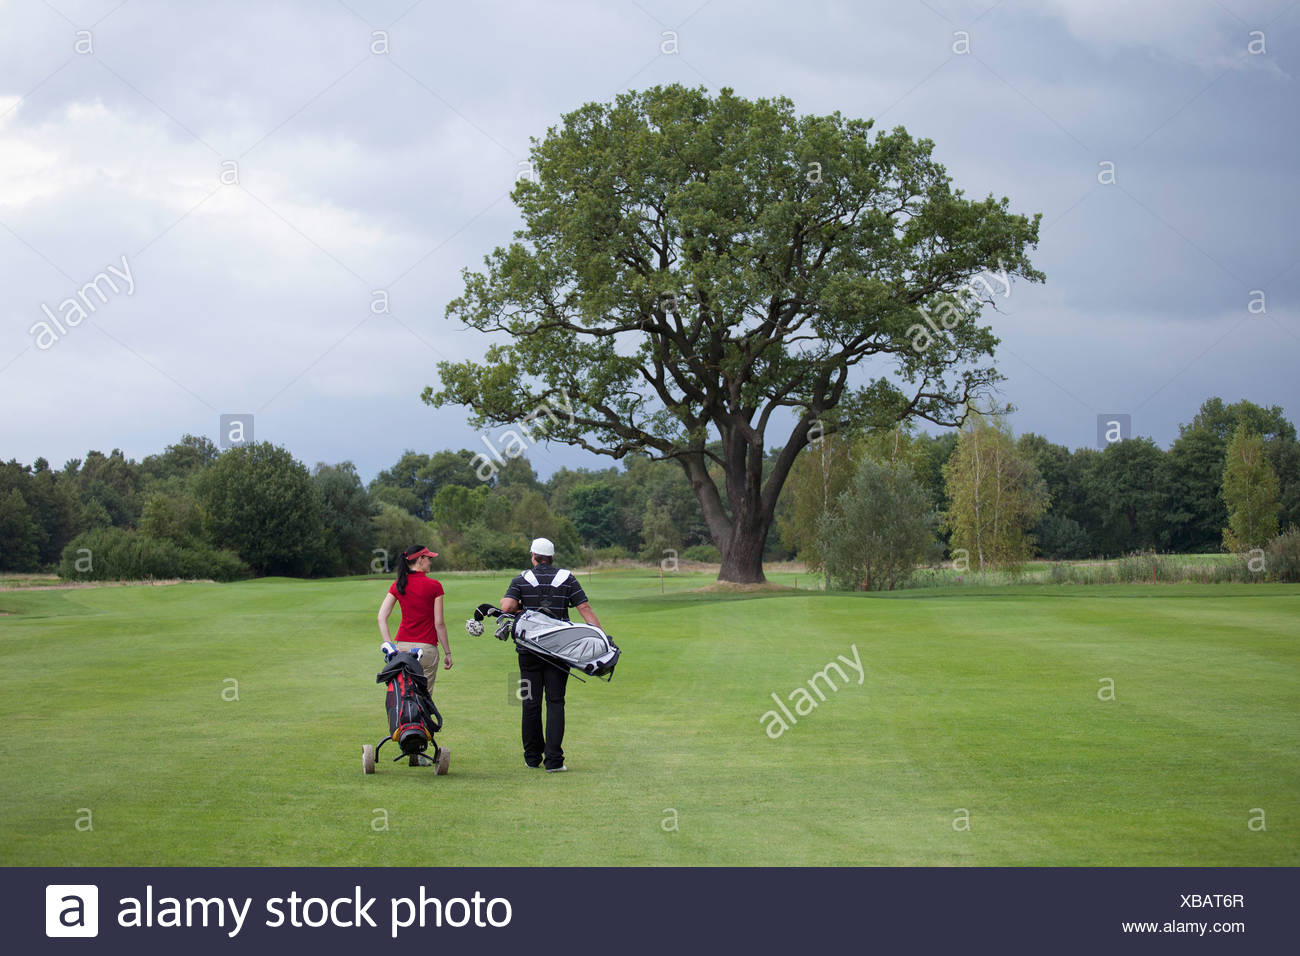 A female and male golfer walking with their golf bags, rear view Stock Photo